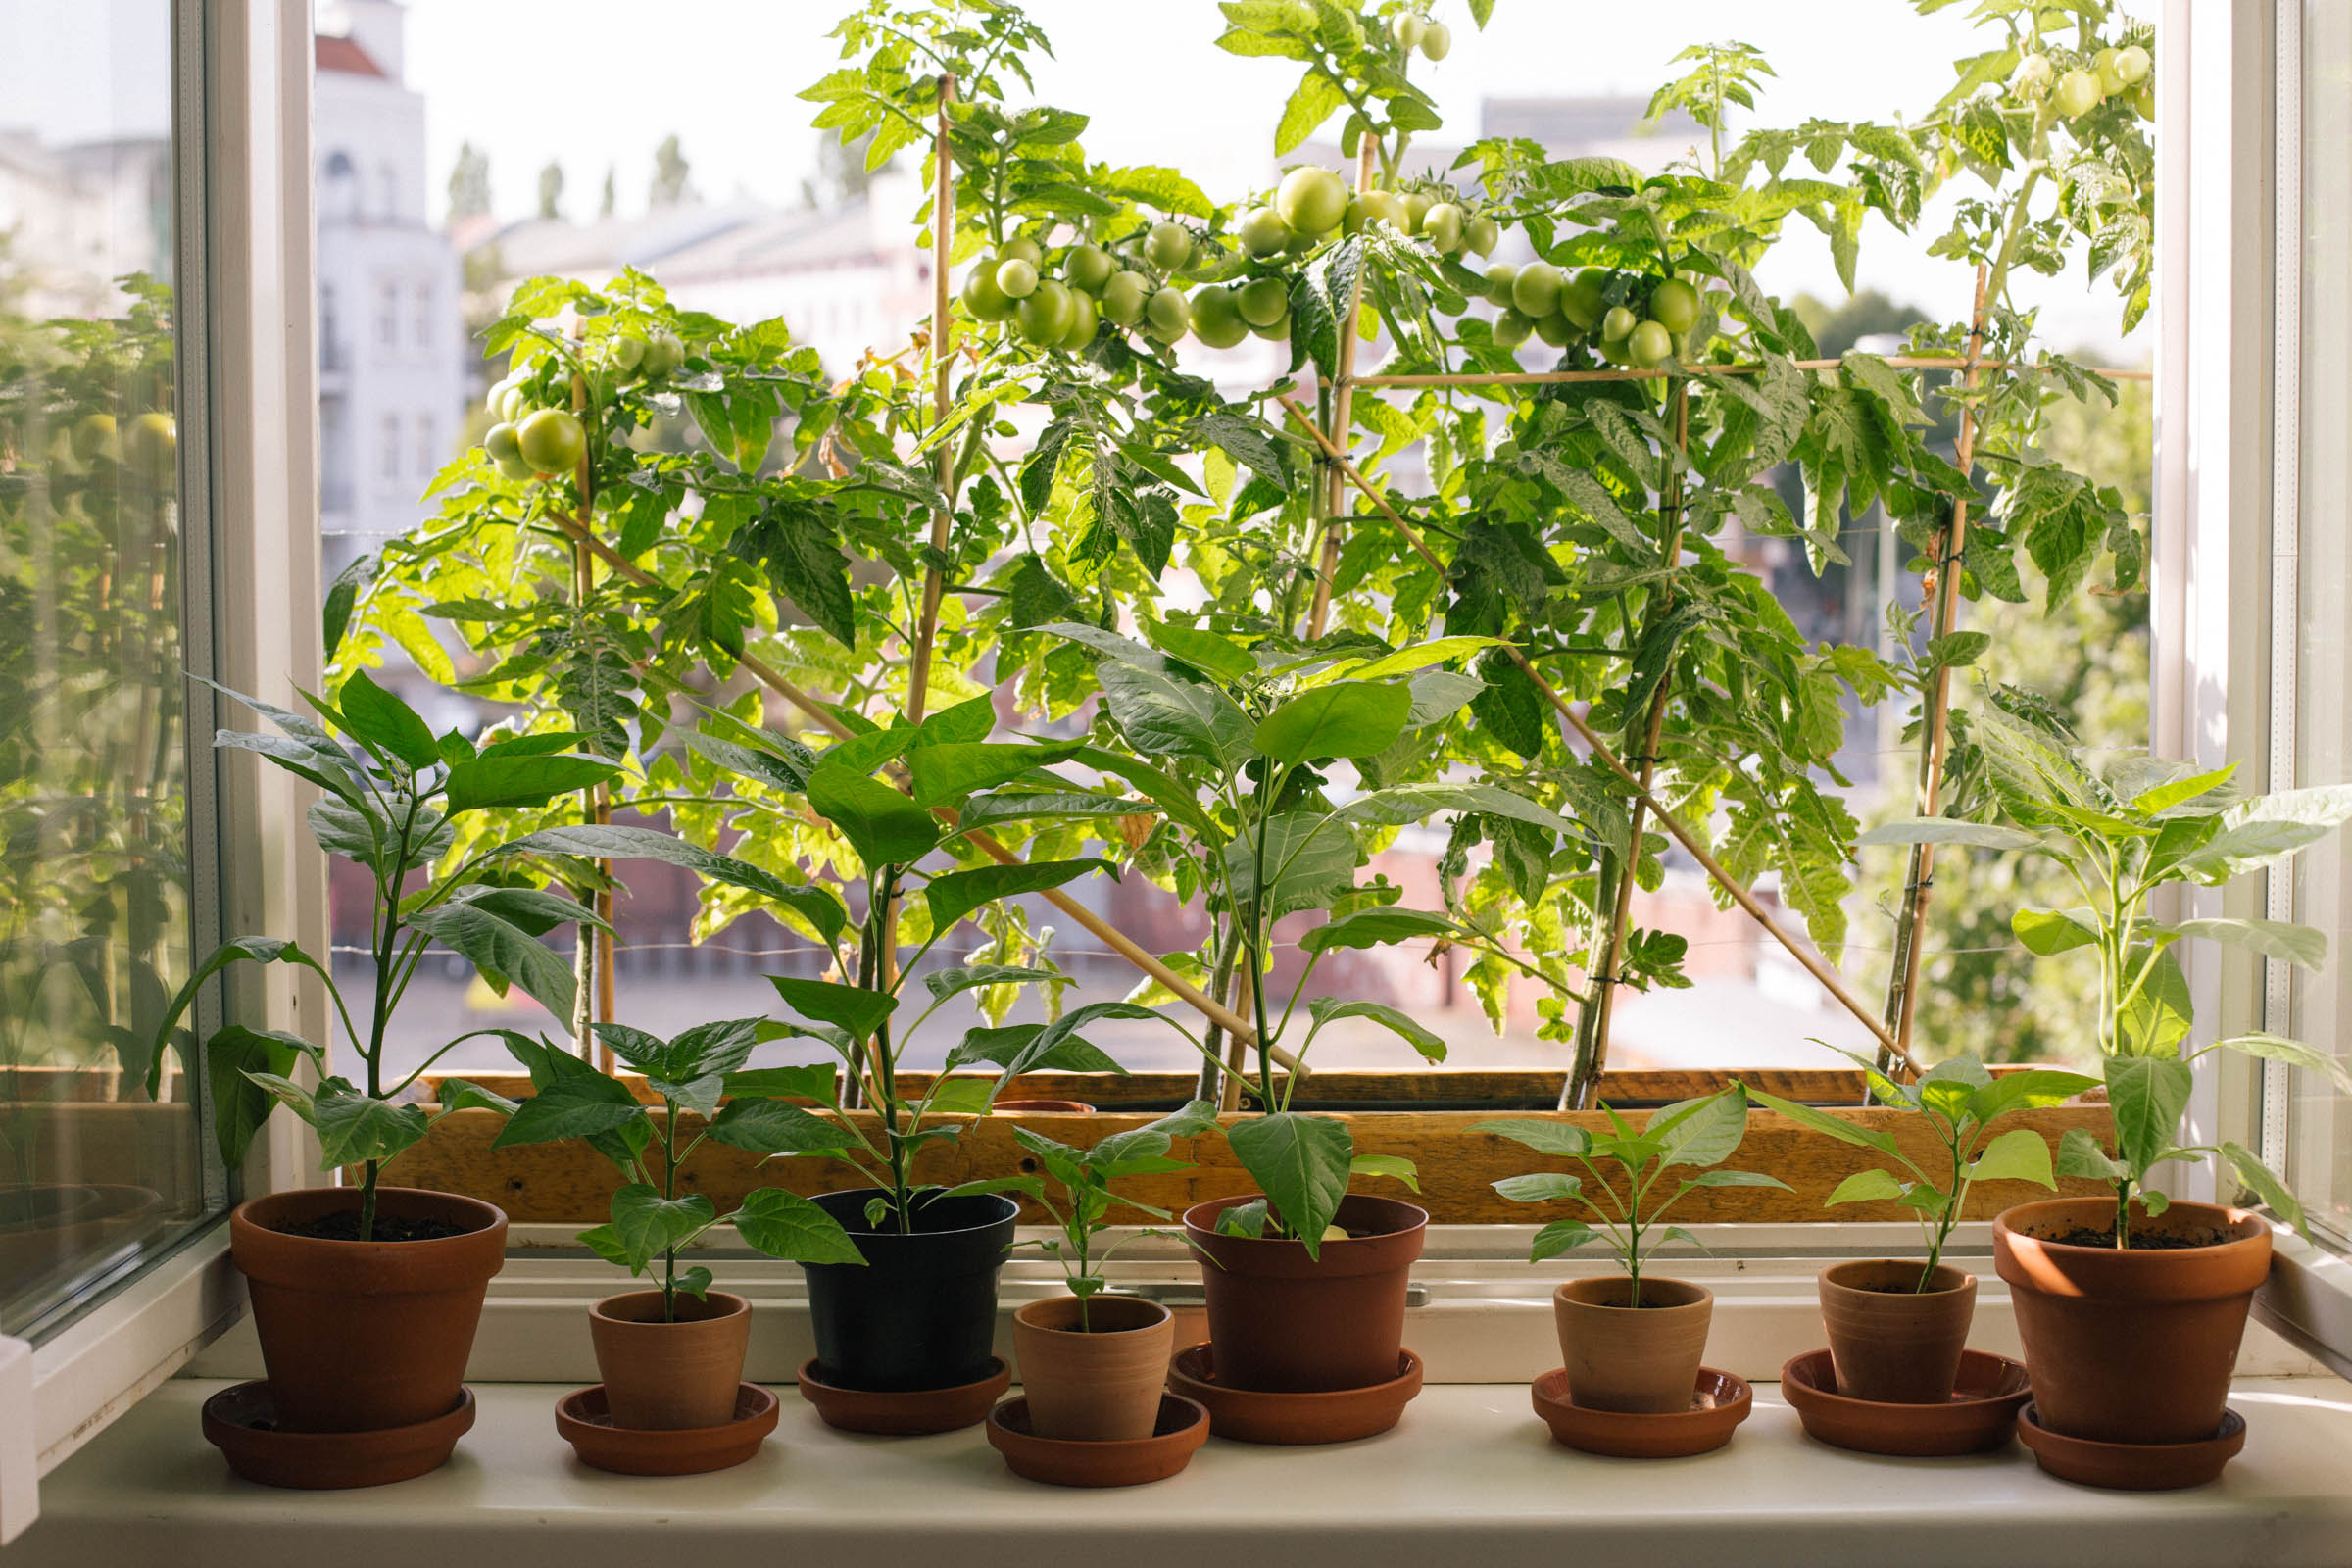 August 2015: The tomatoes in our bedroom window are a-plenty.